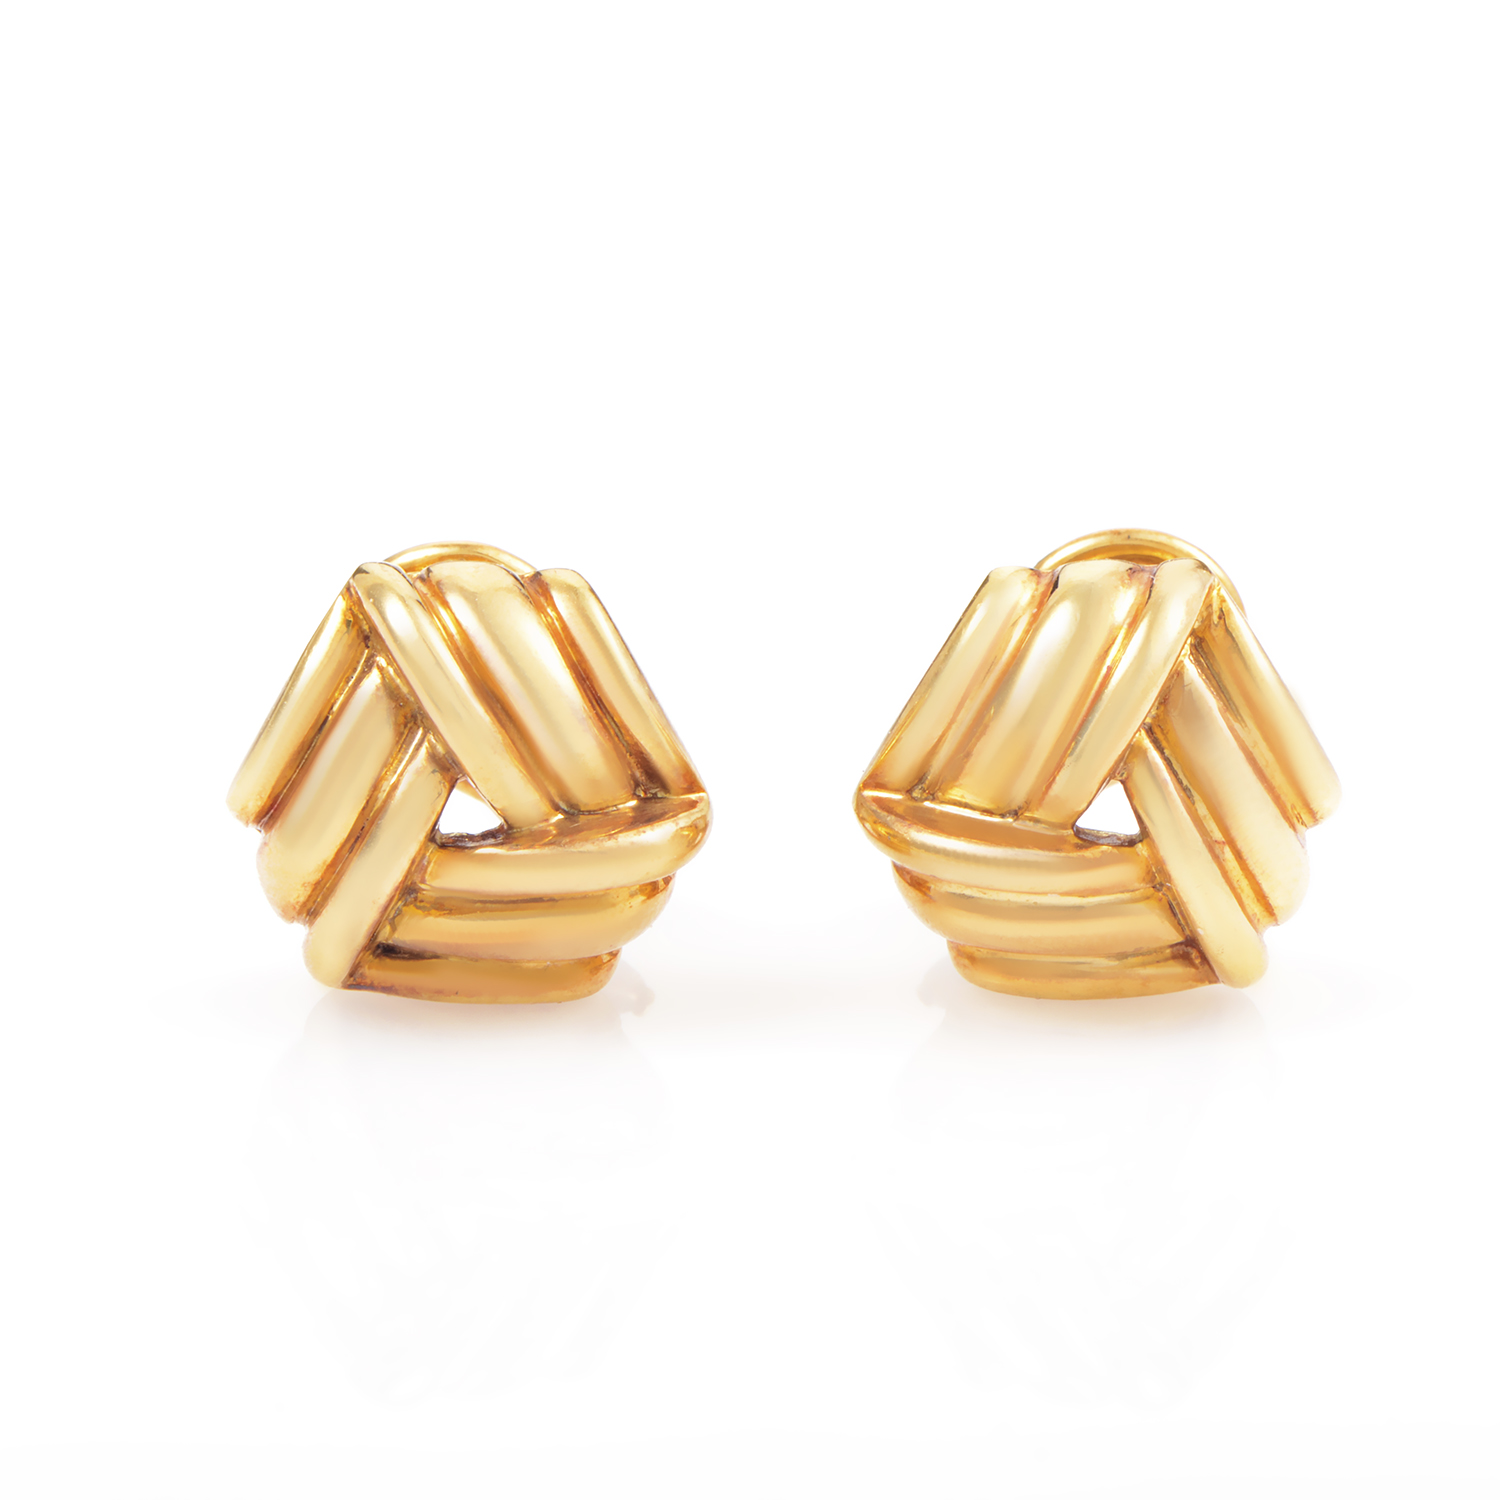 Tiffany & Co. Women's 18K Yellow Gold Clip-on Earrings AK1B3997